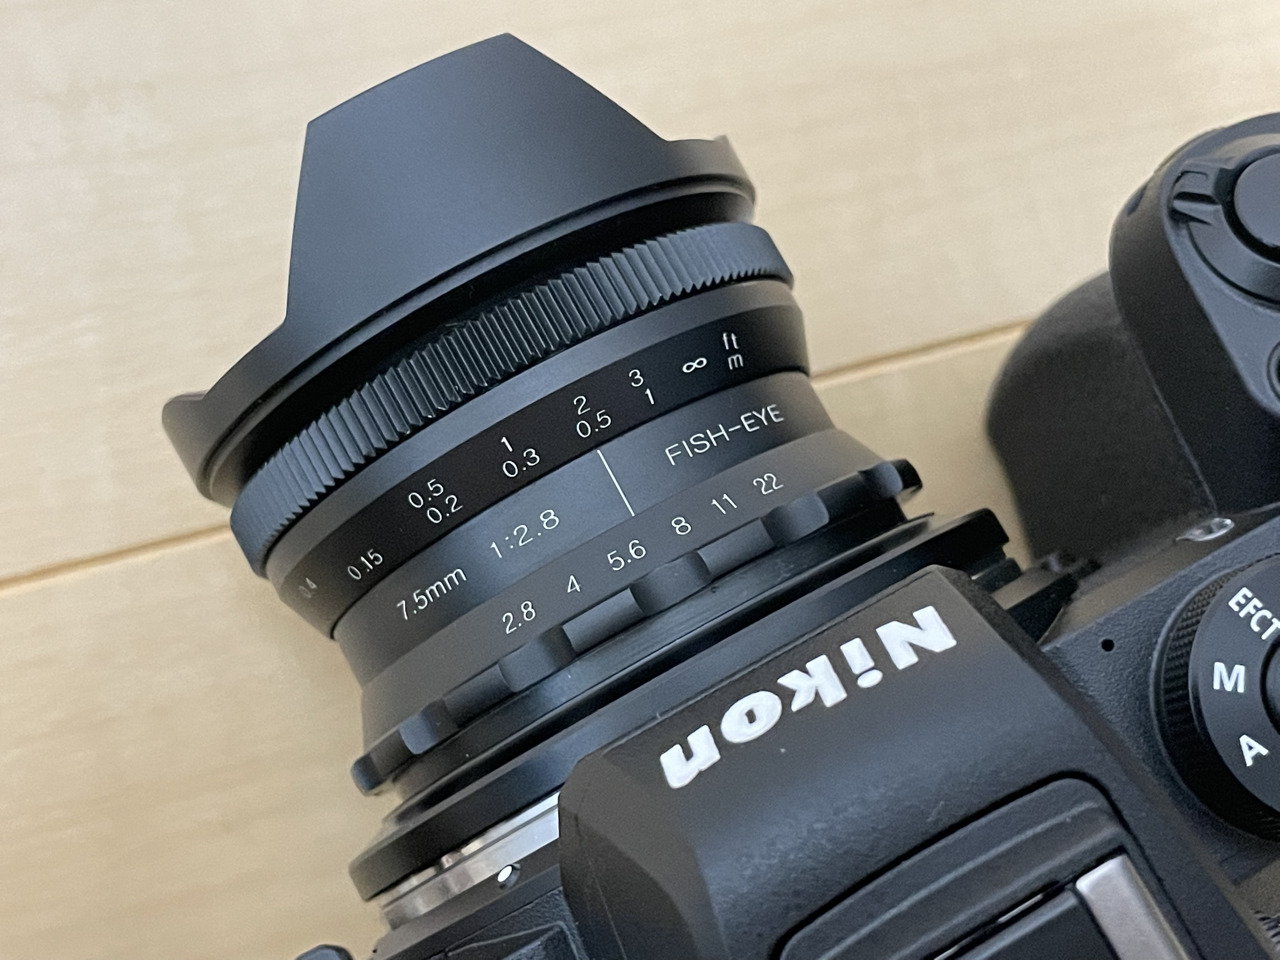 PERGEAR 7.5mm f2.8絞り・フォーカス